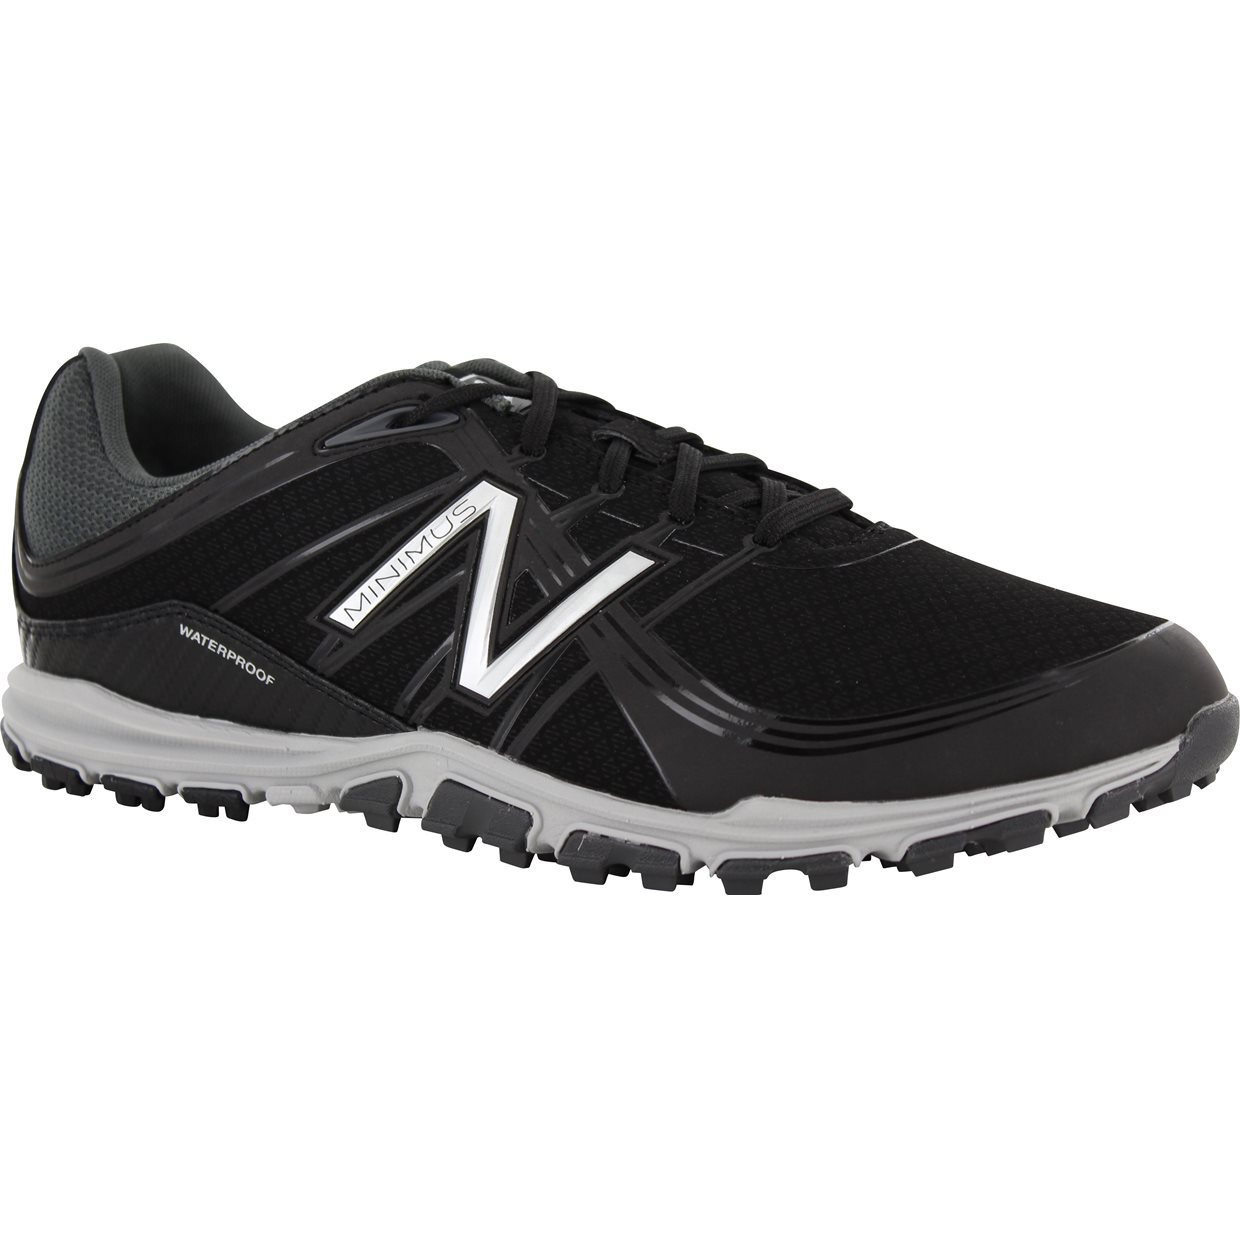 New Balance Minimus 1005 Spikeless Shoes at GlobalGolf.com 67254cfe141